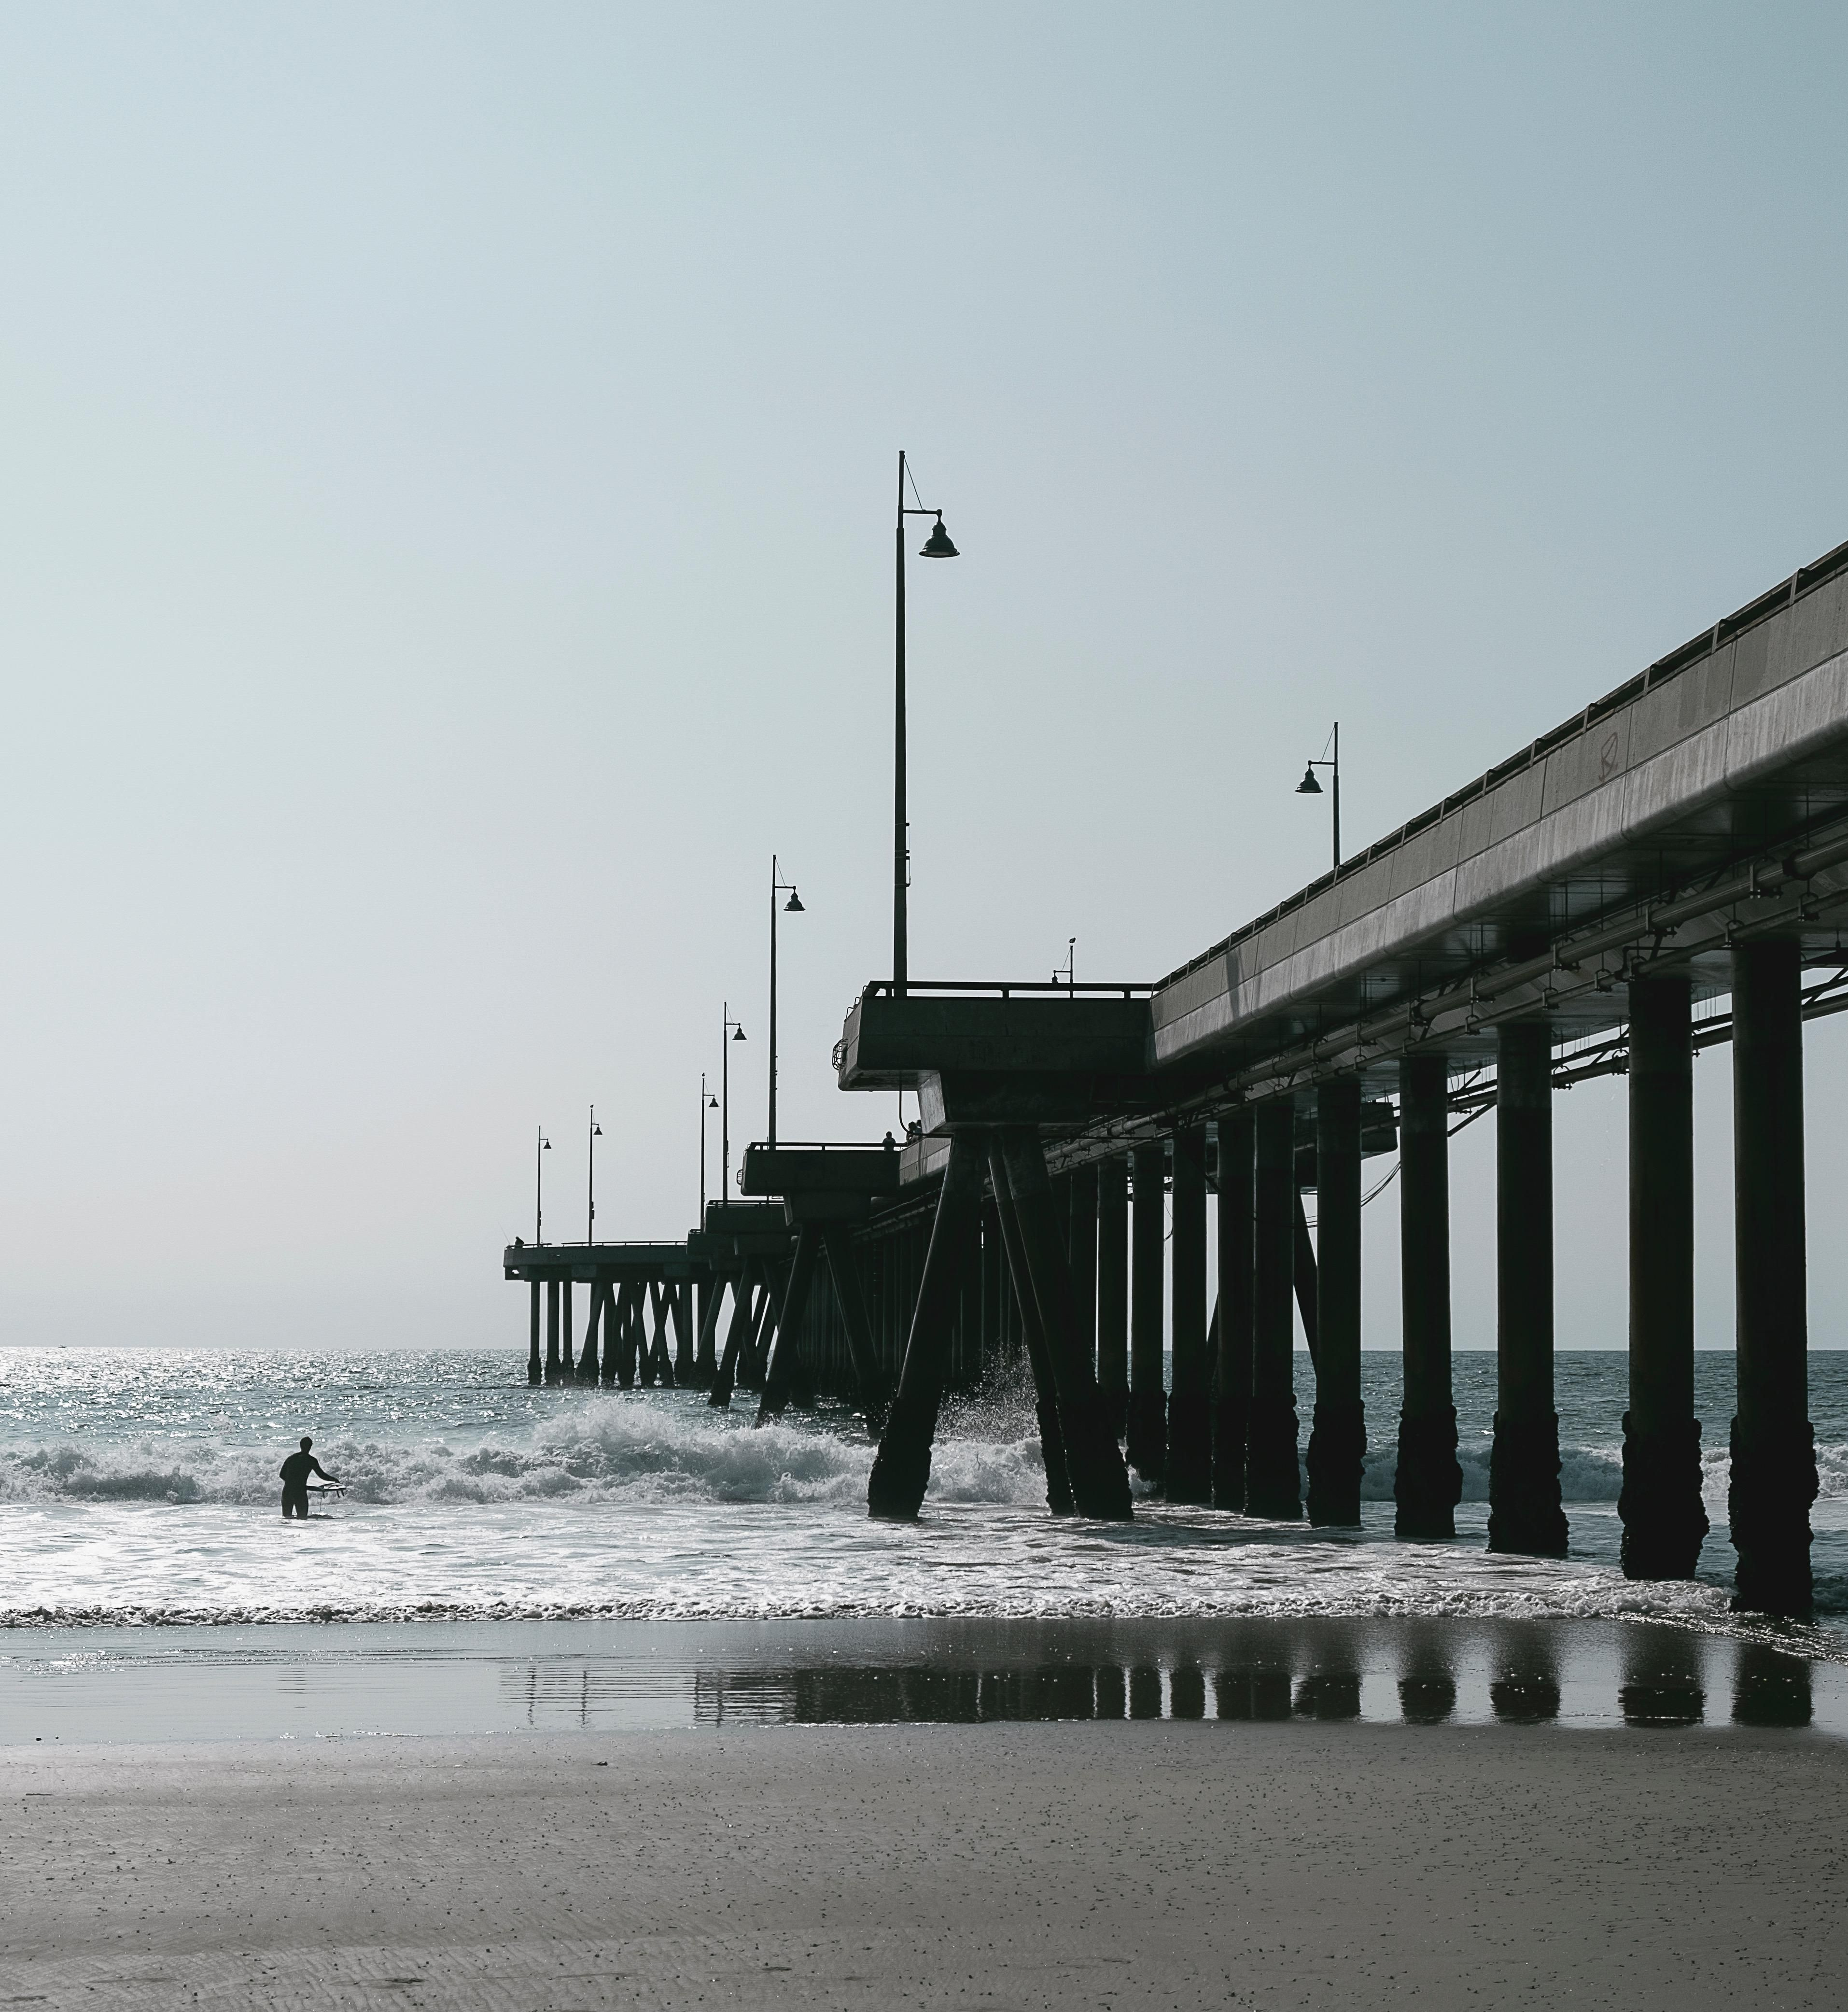 Rockport Tx Visit The New Lighted Fishing Pier At The Beach